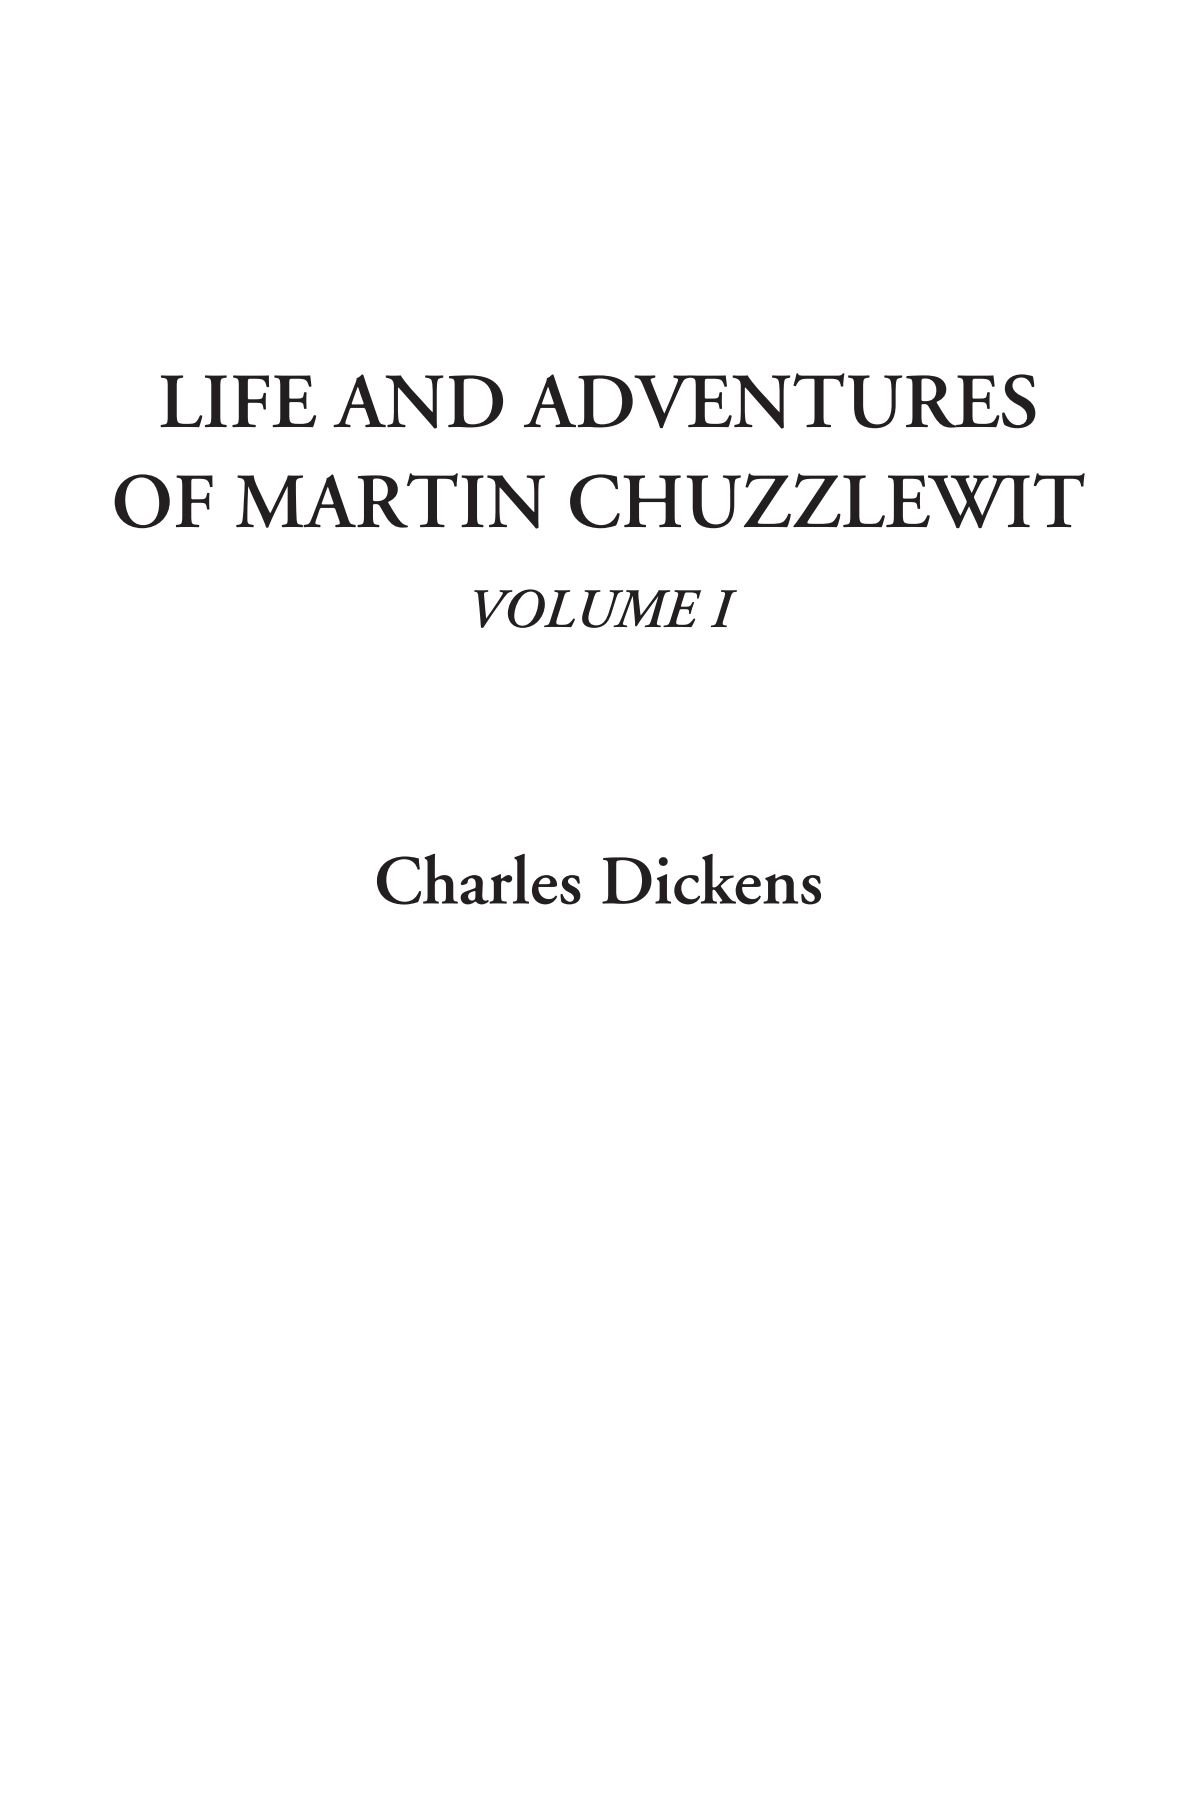 Download Life and Adventures of Martin Chuzzlewit, Volume I ebook